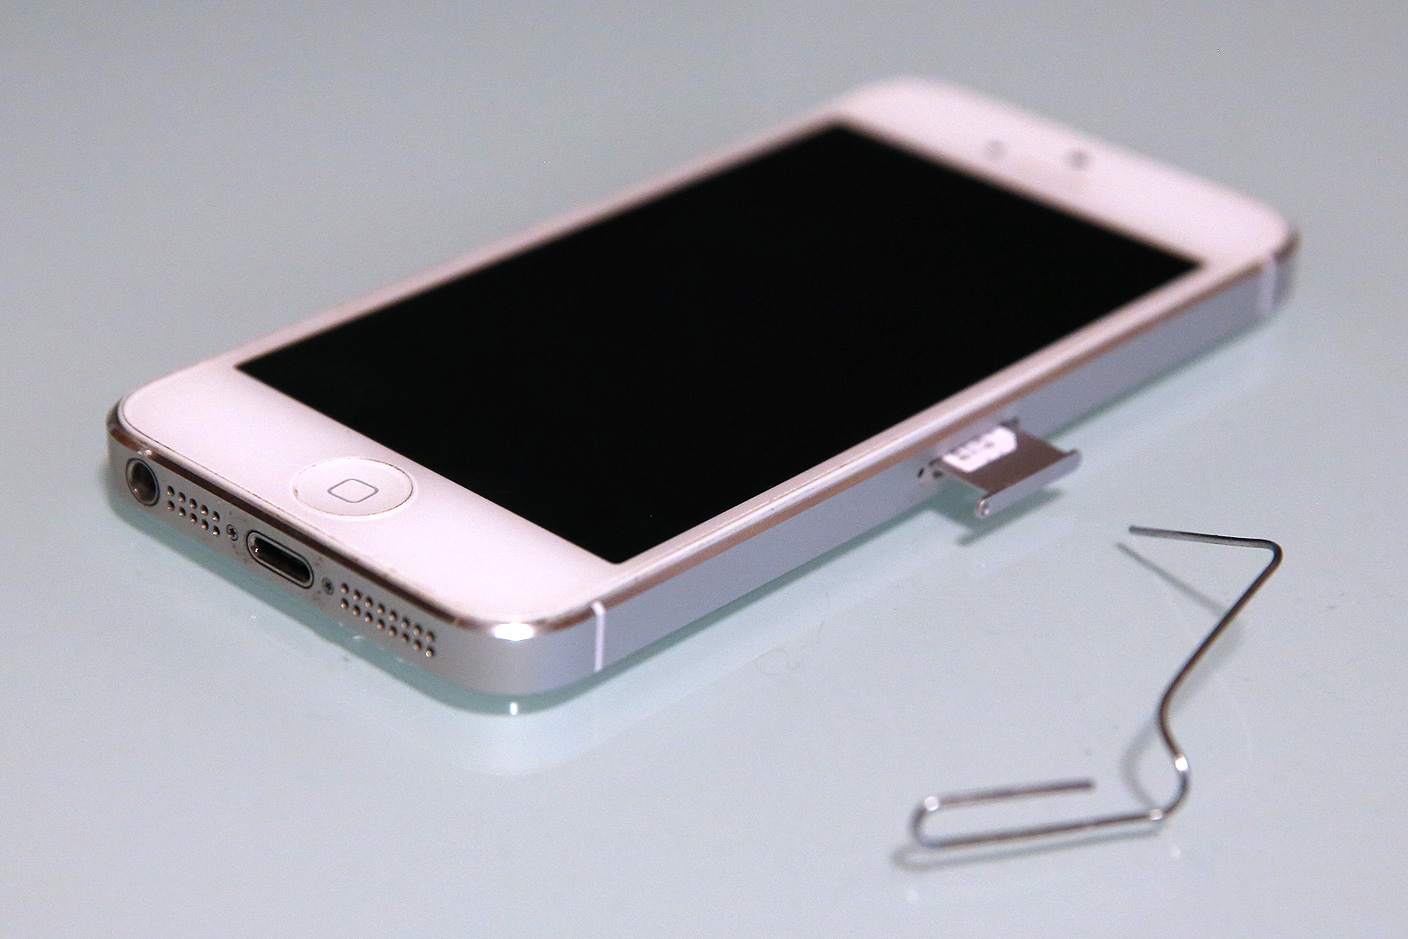 How-To: Safely Prepare + Wipe Your IPhone For Resale Or